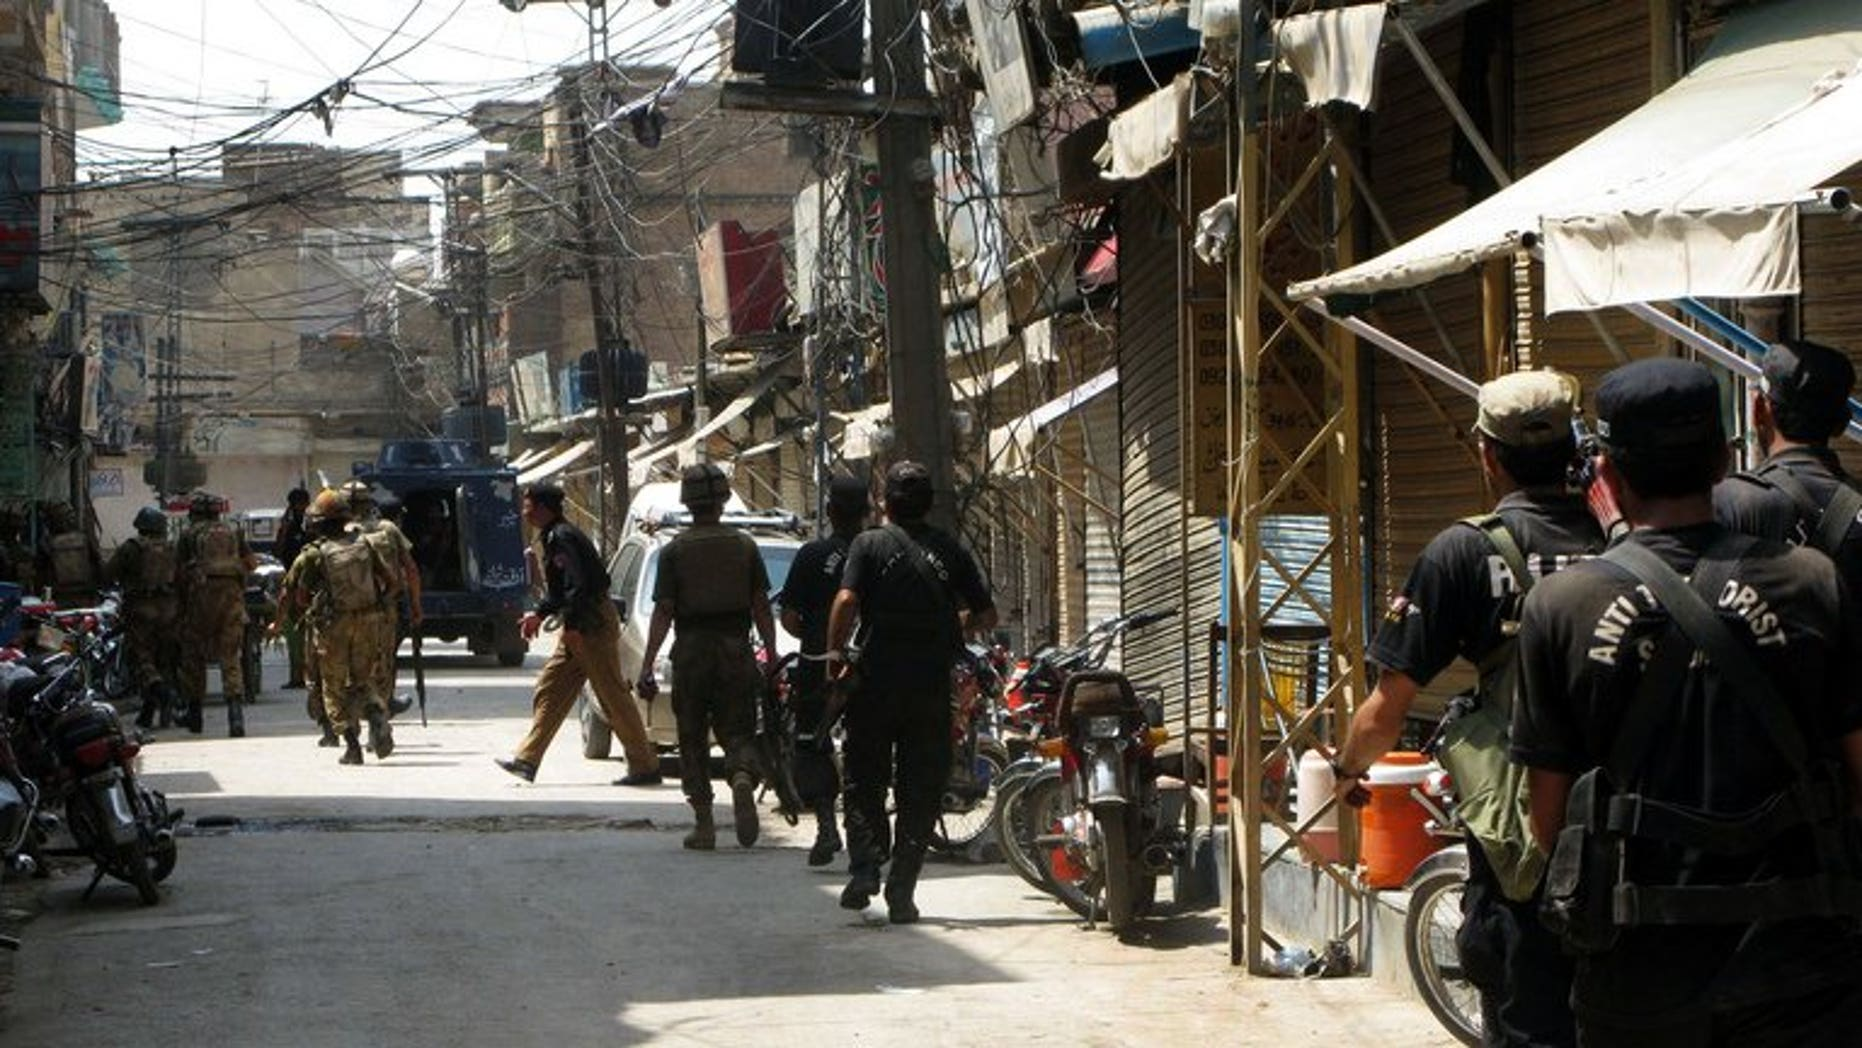 Pakistani soldiers patrols the streets of Bannu, on July 16, 2012. A bomb has wounded 11 people, mostly children, when it exploded outside a Pakistani girls' school in Bannu, a doctor has told AFP.